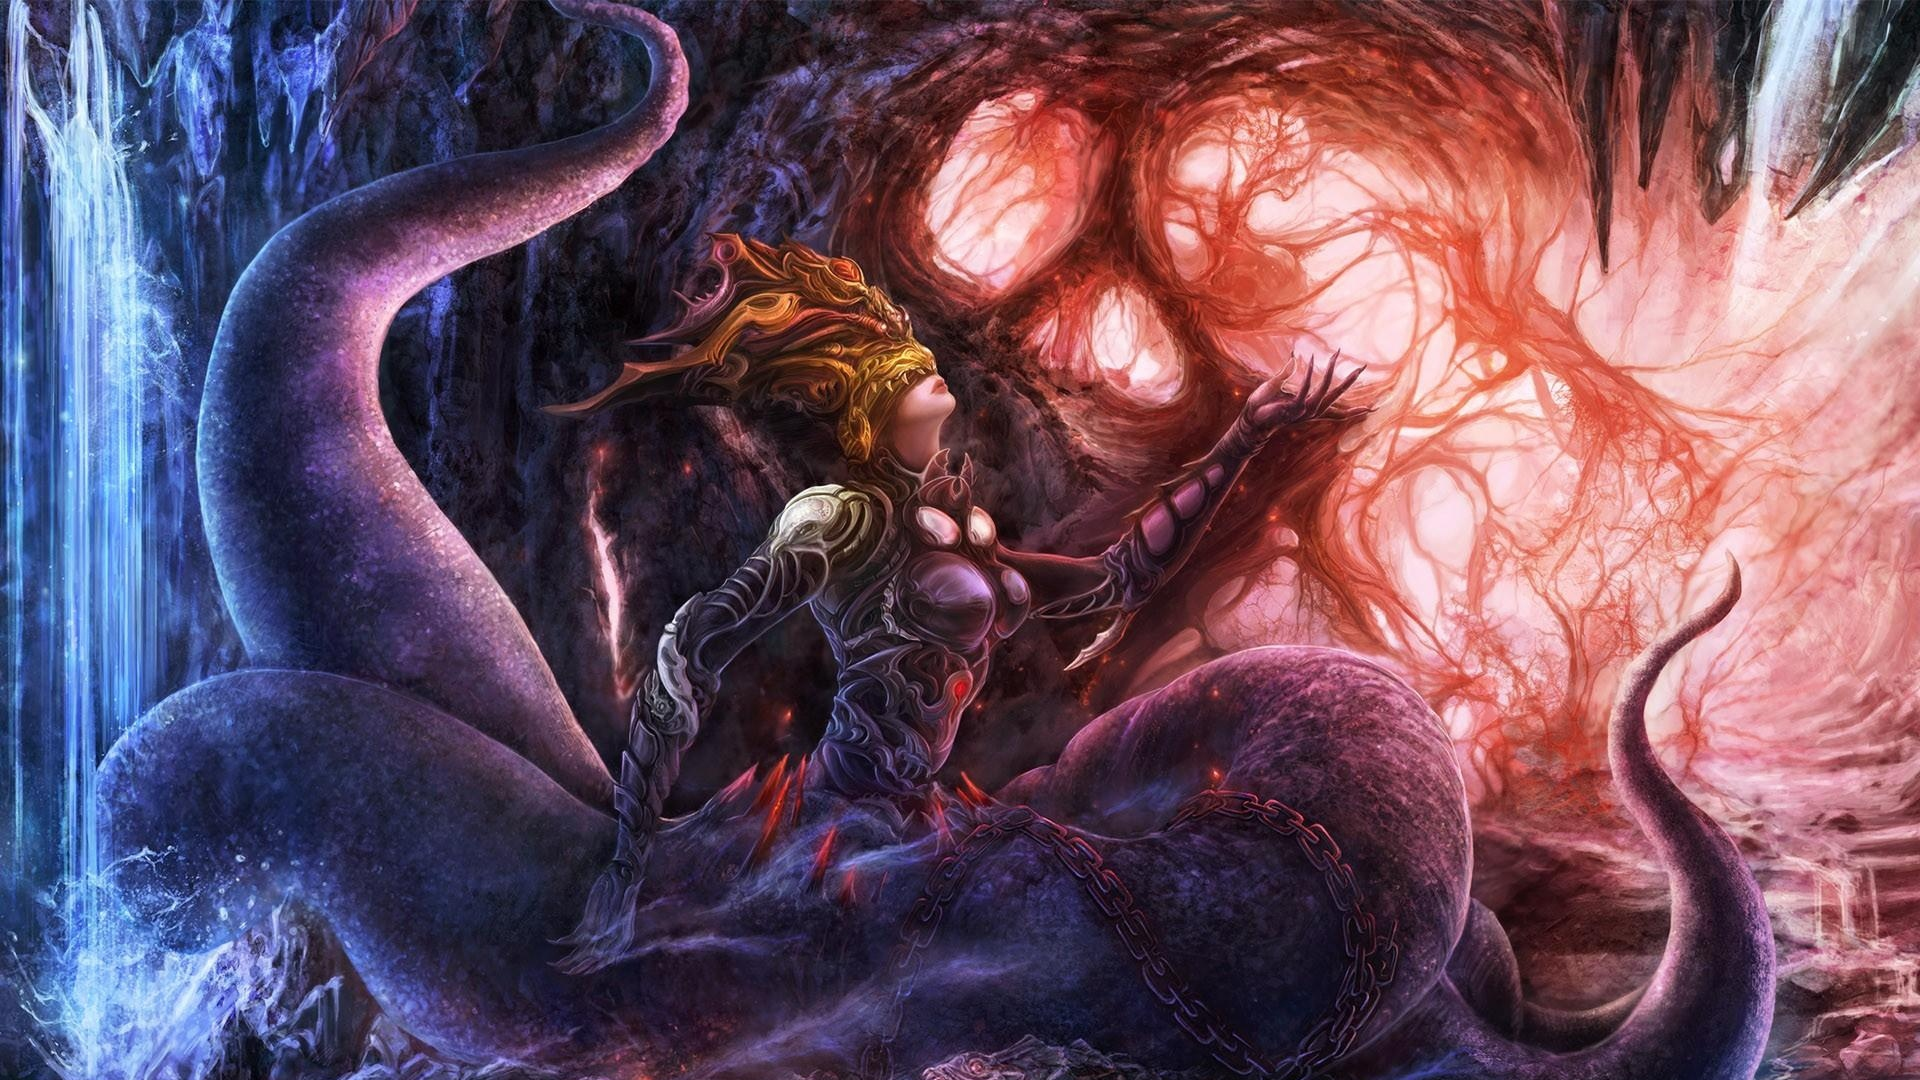 download wallpaper 1920x1080 girl, monster, tentacles, chain, cave